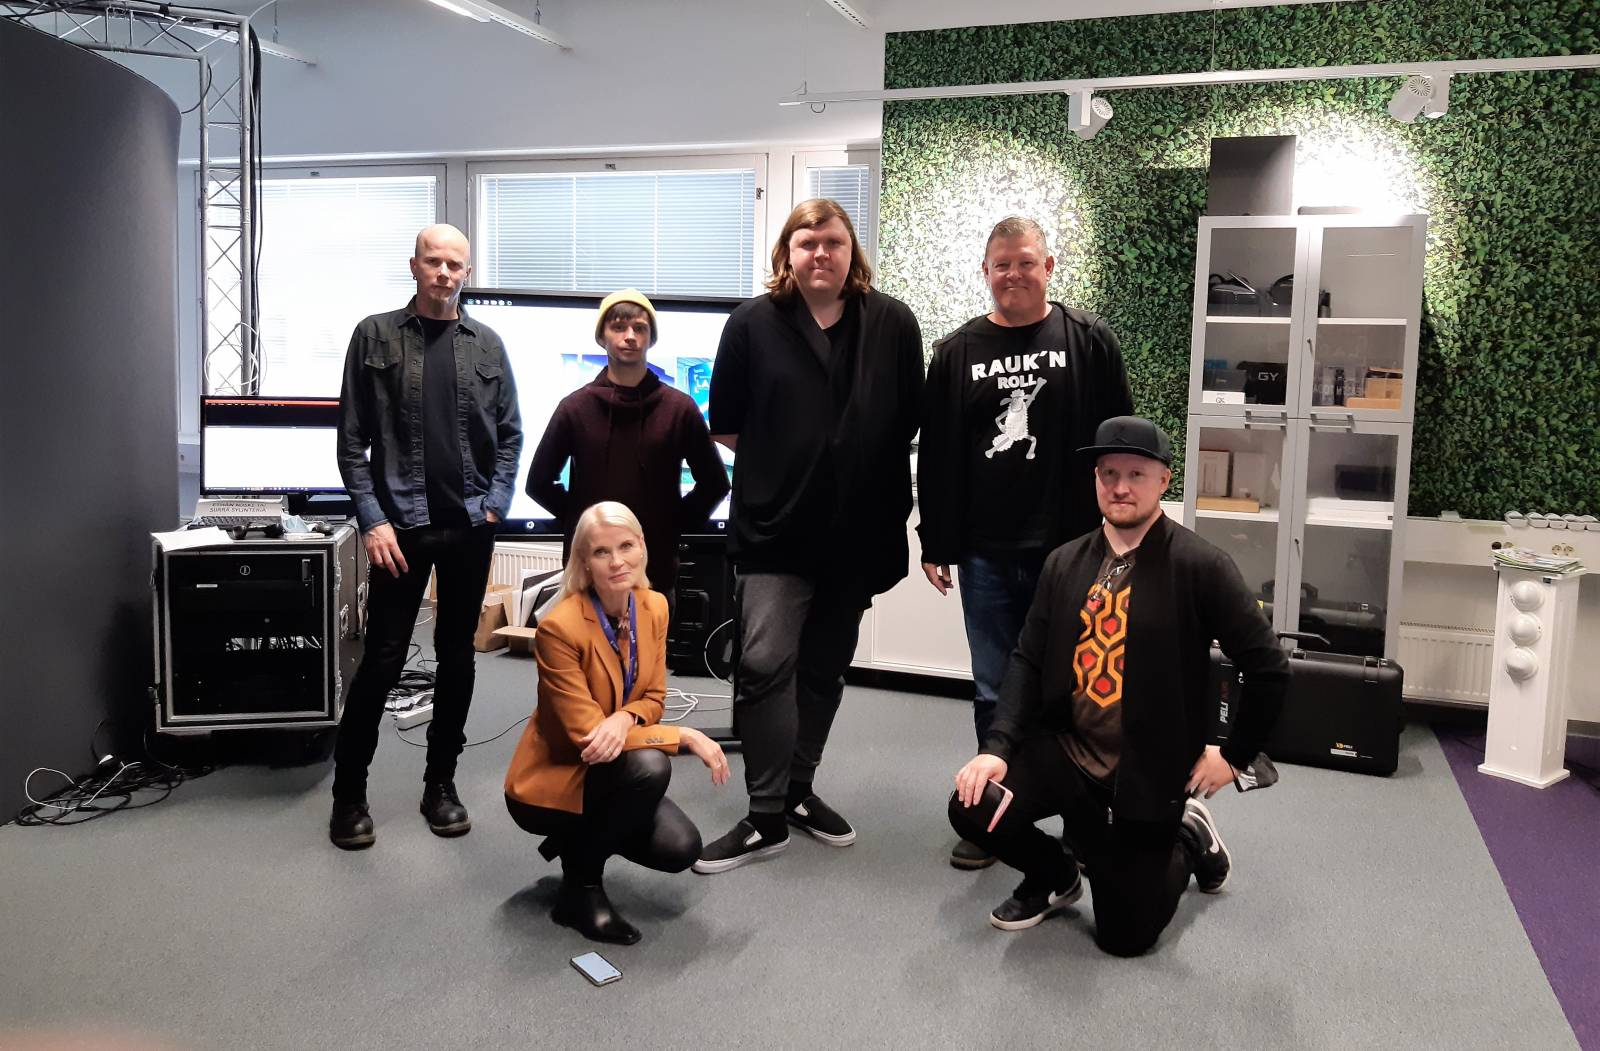 The Lab had international visitors from Finland, Estonia and United States